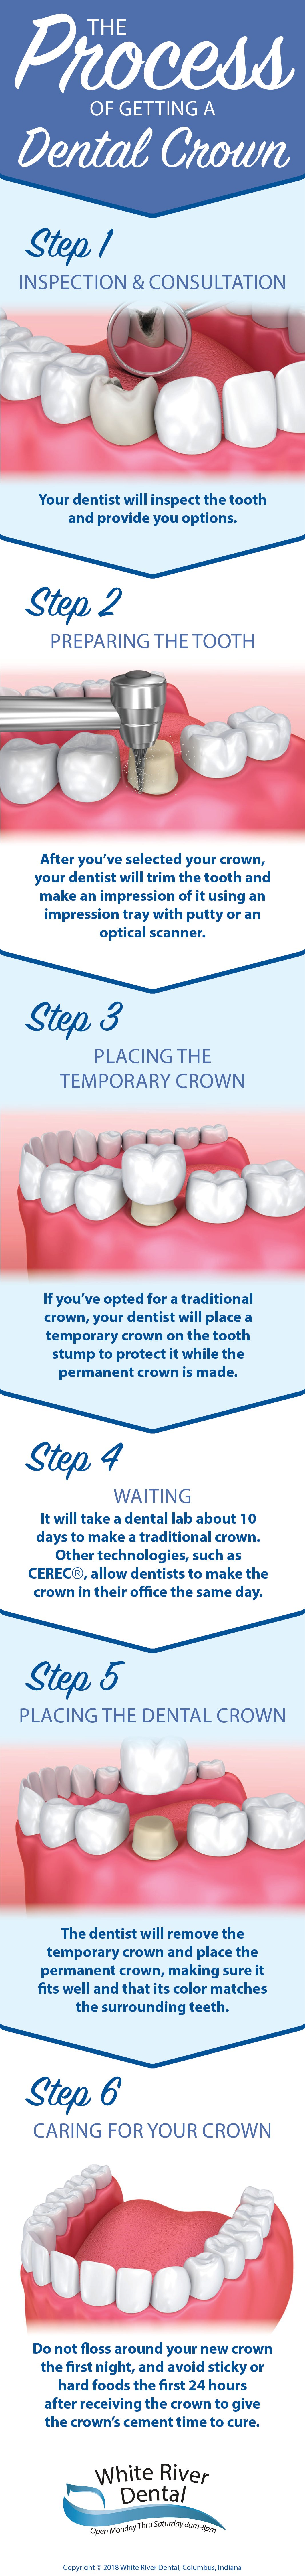 What's Involved with a Dental Crown Procedure